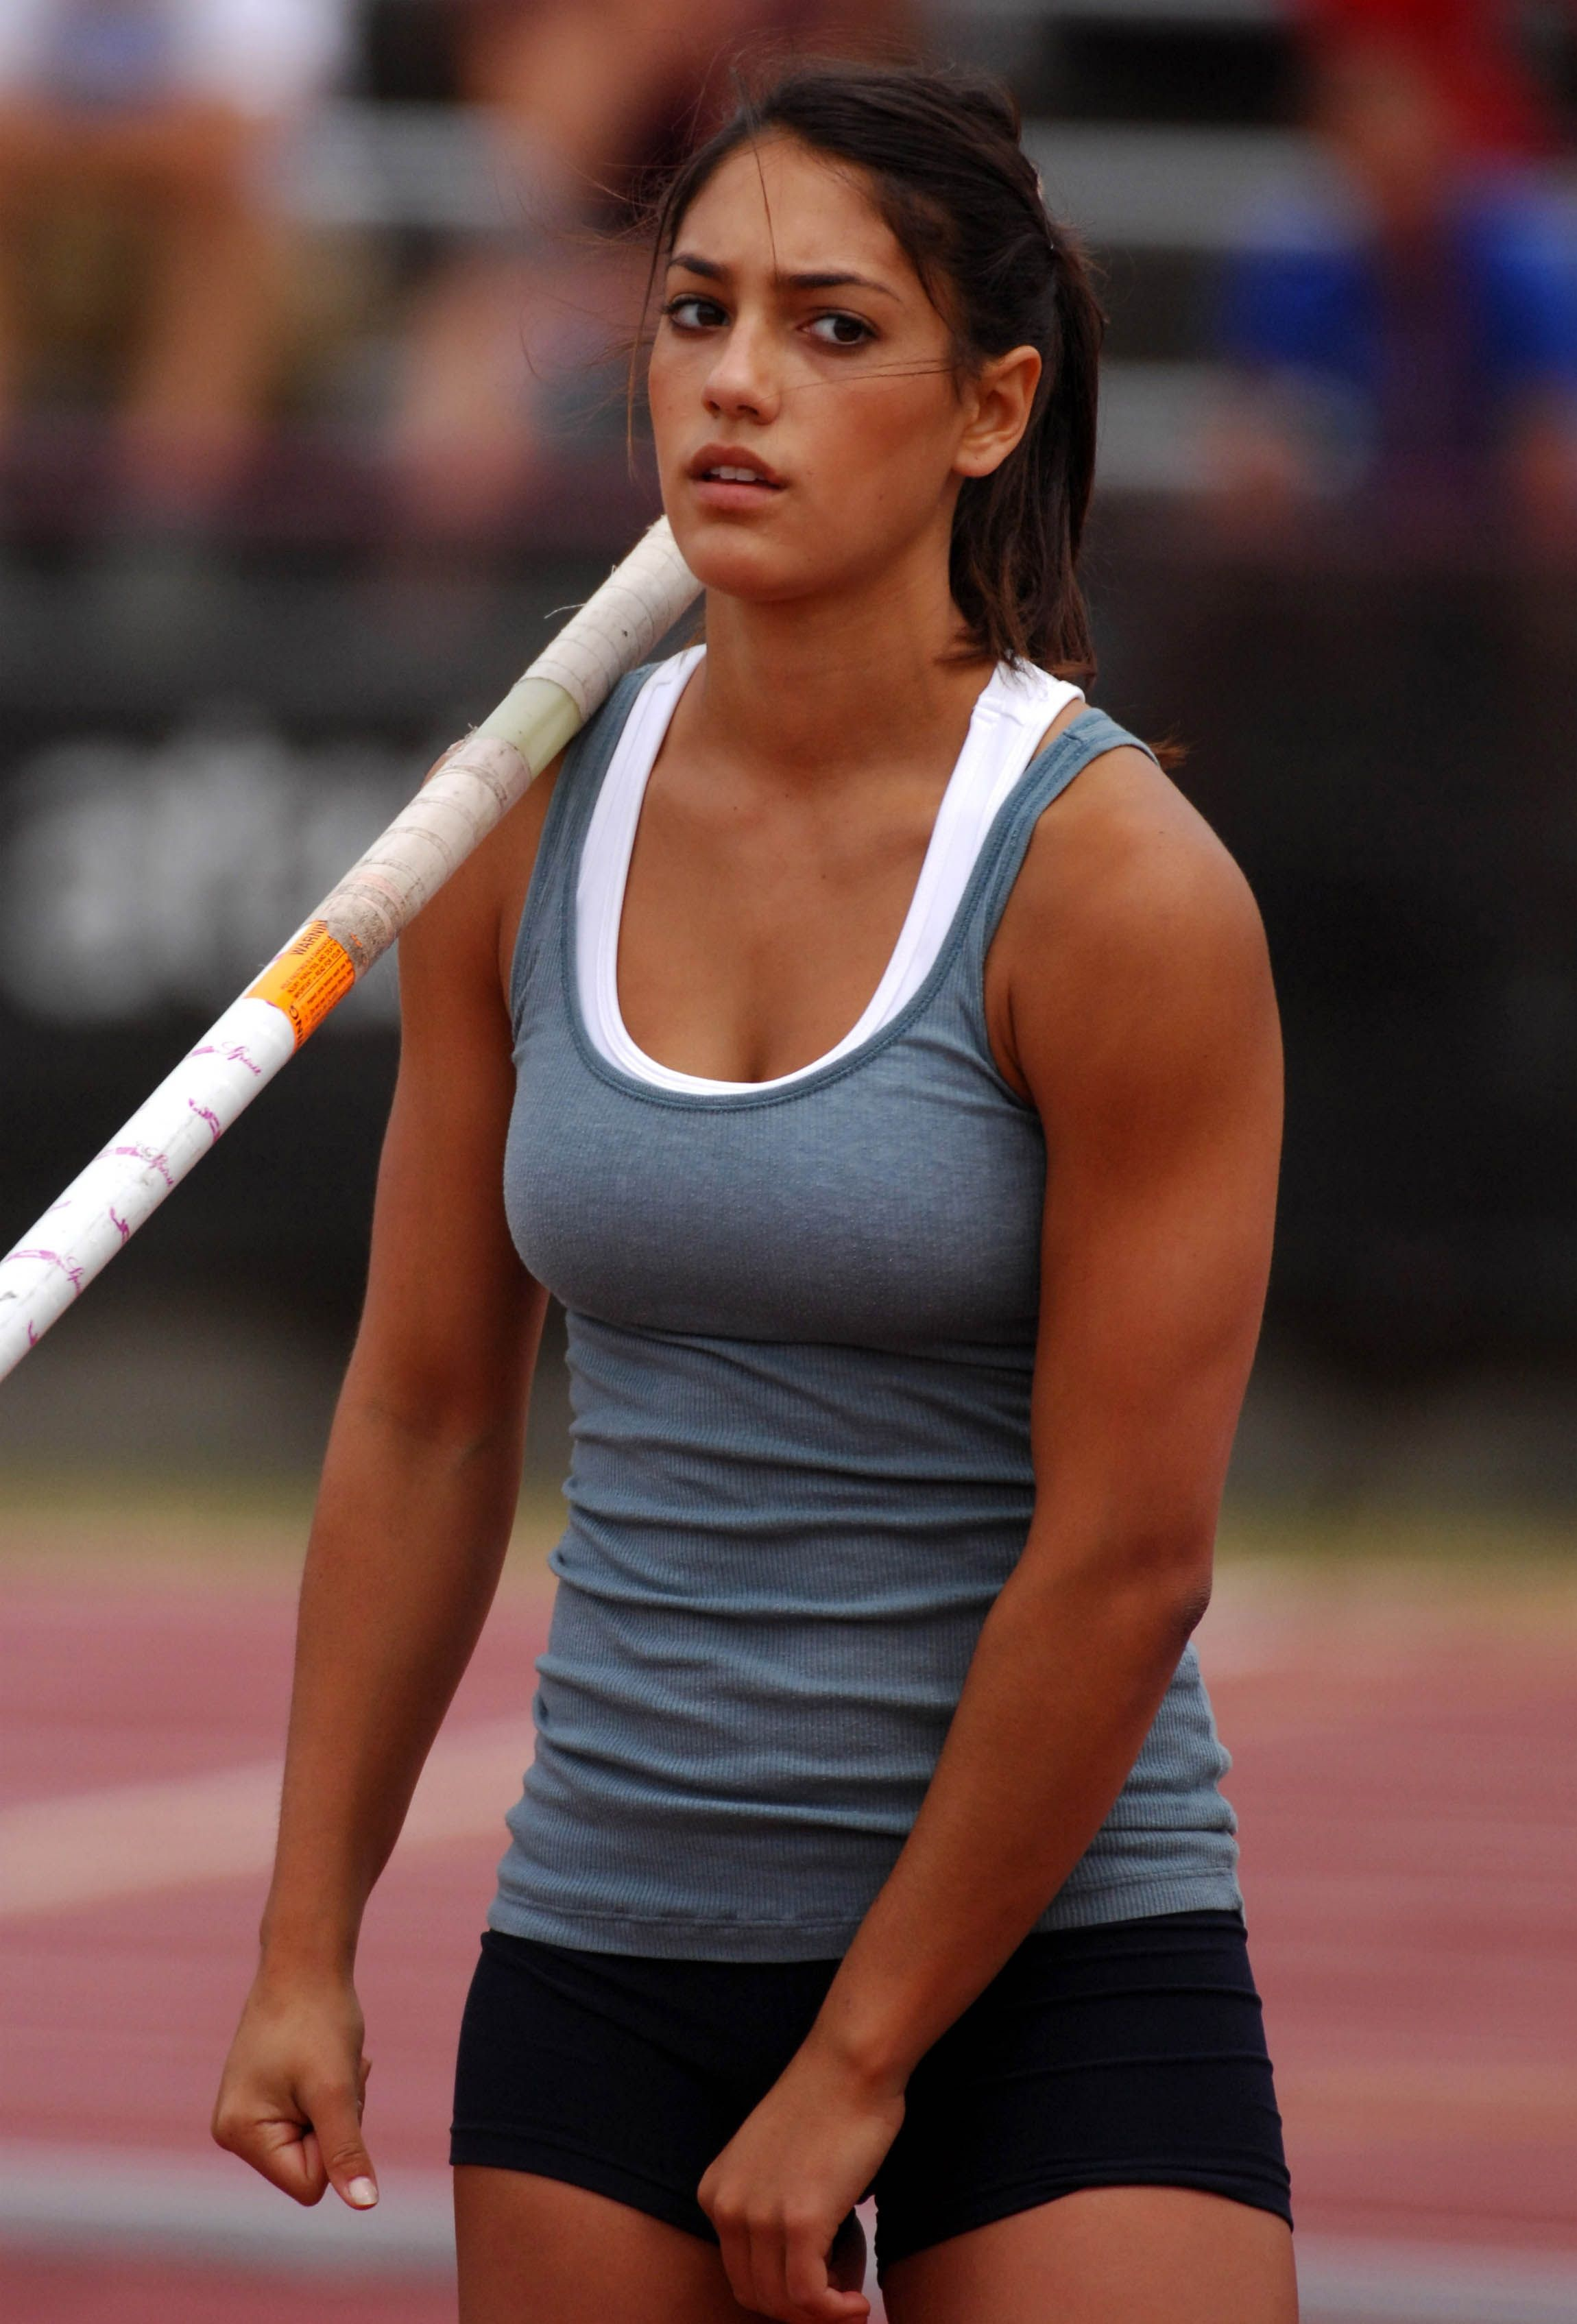 images Allison Stokke